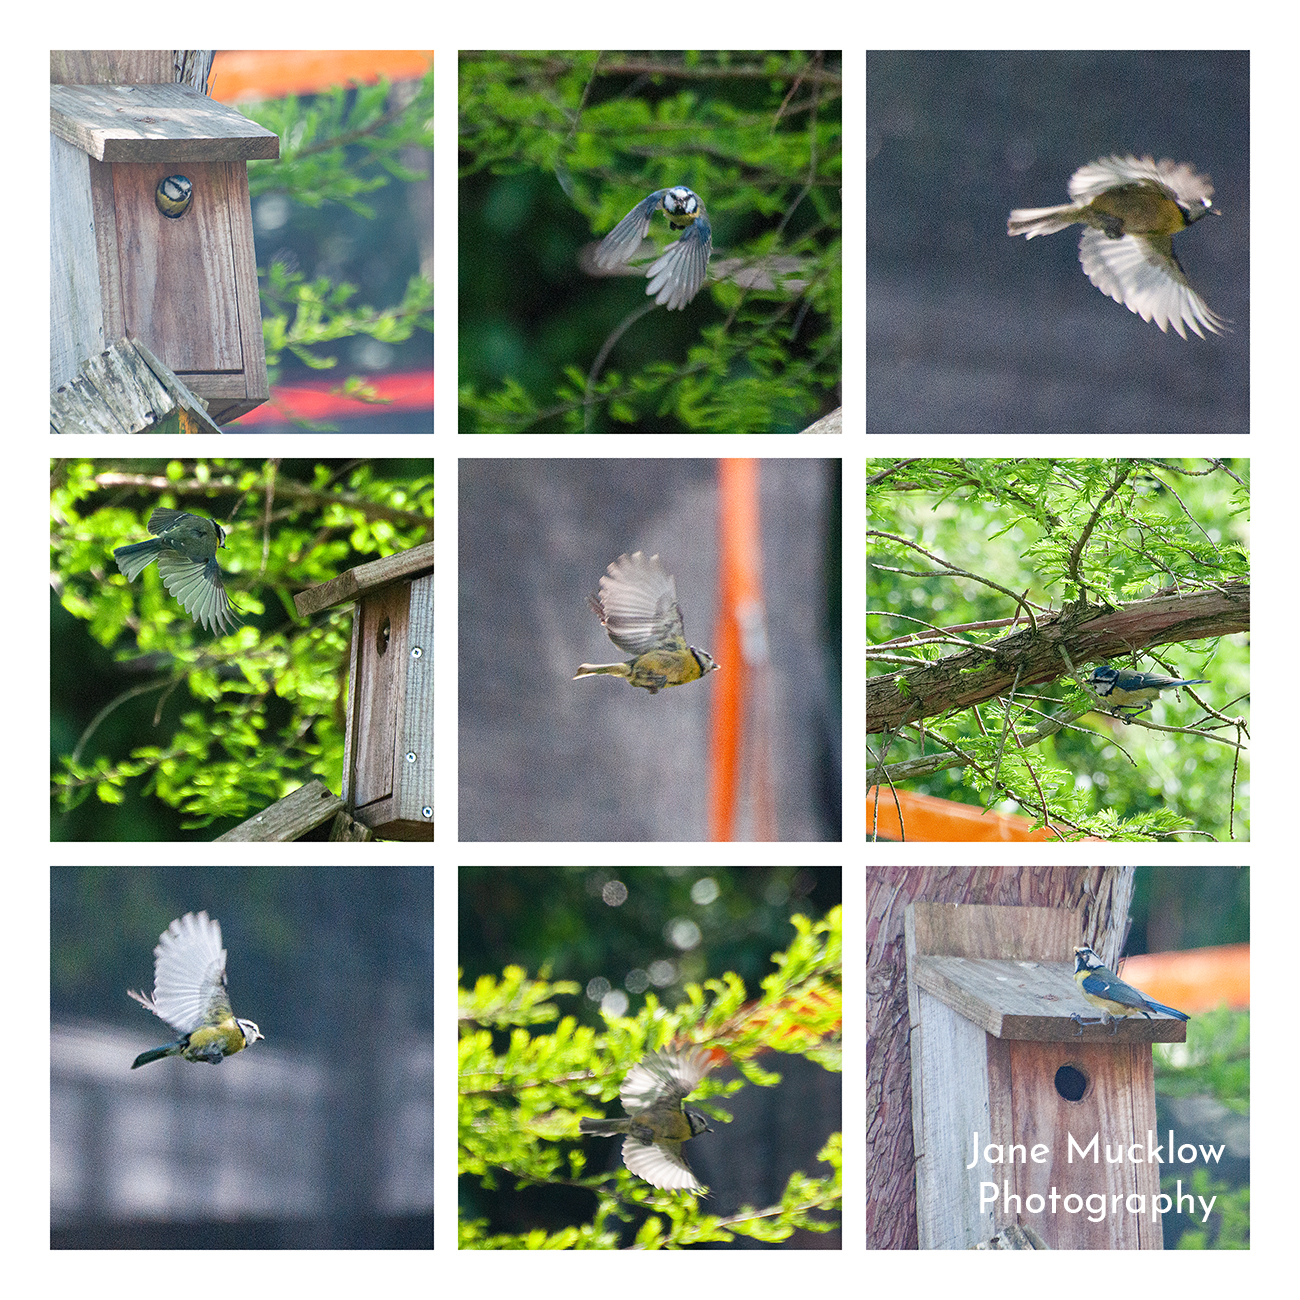 Photos of bluetits by Jane Mucklow, montage from the garden of nesting bluetits